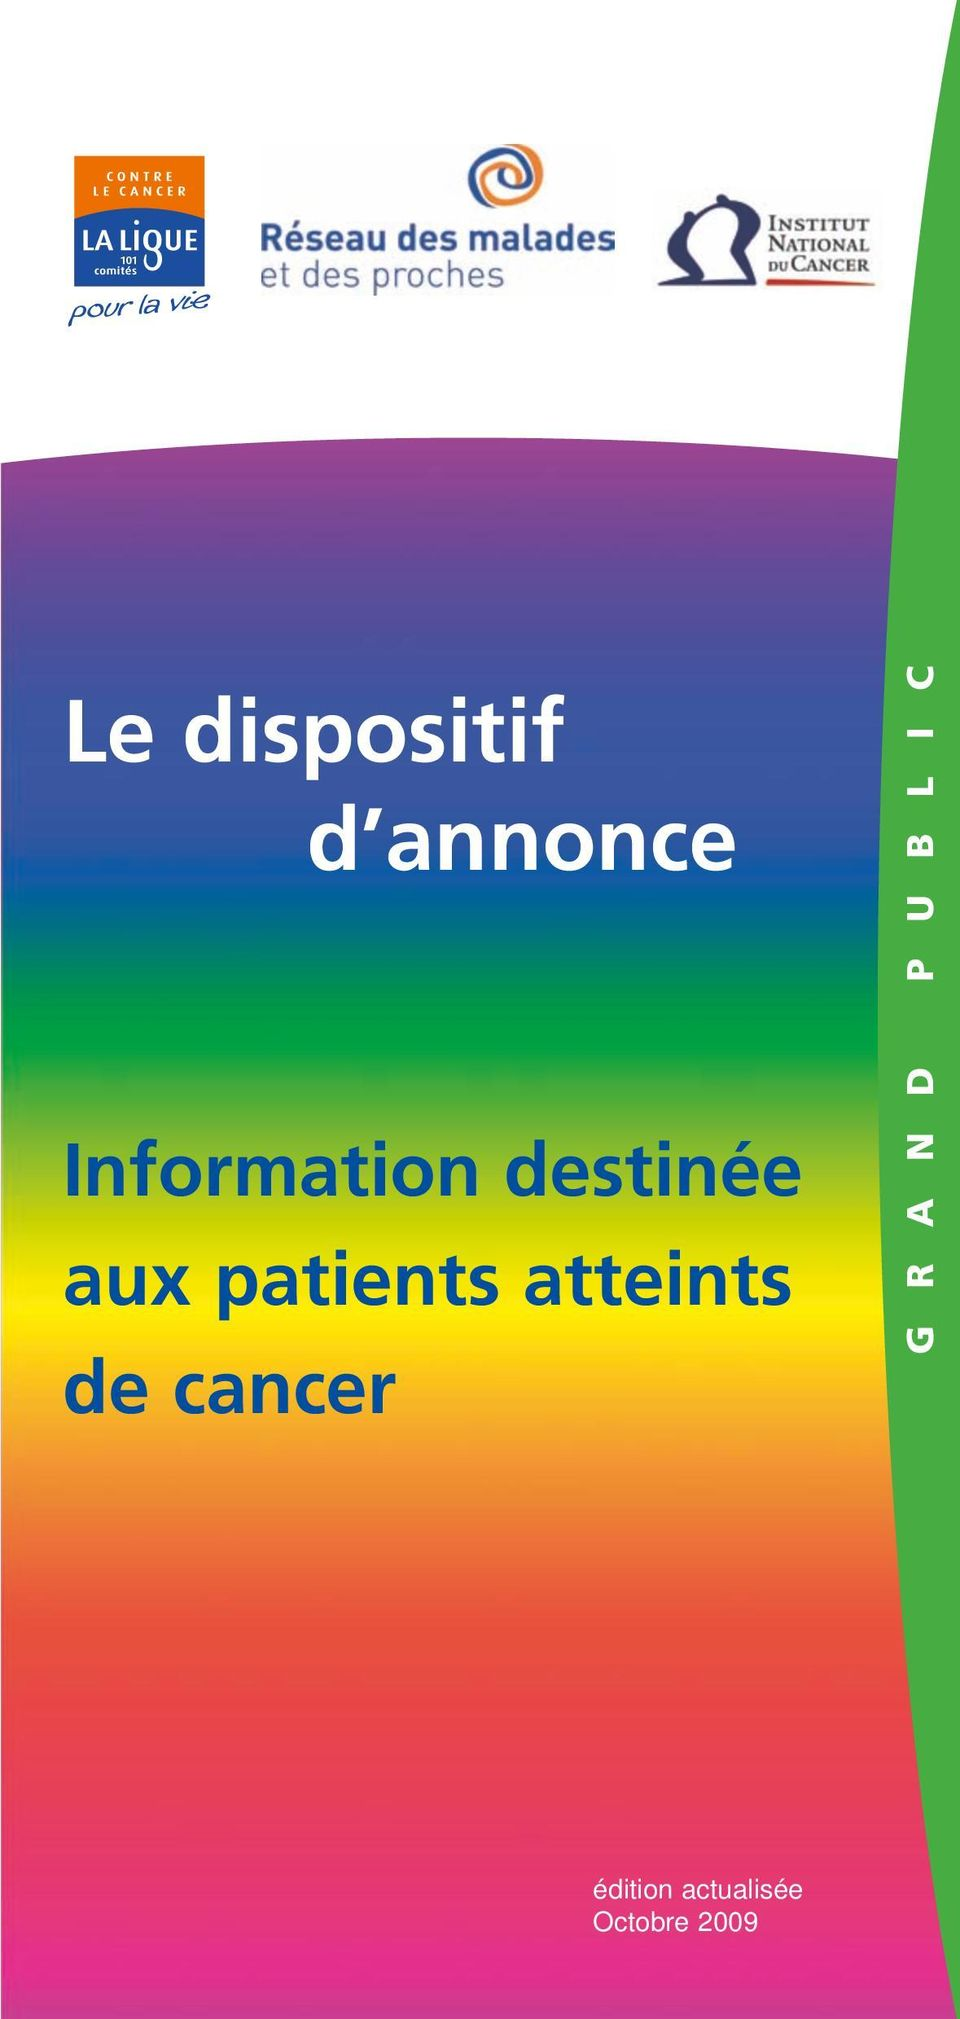 patients atteints de cancer G R